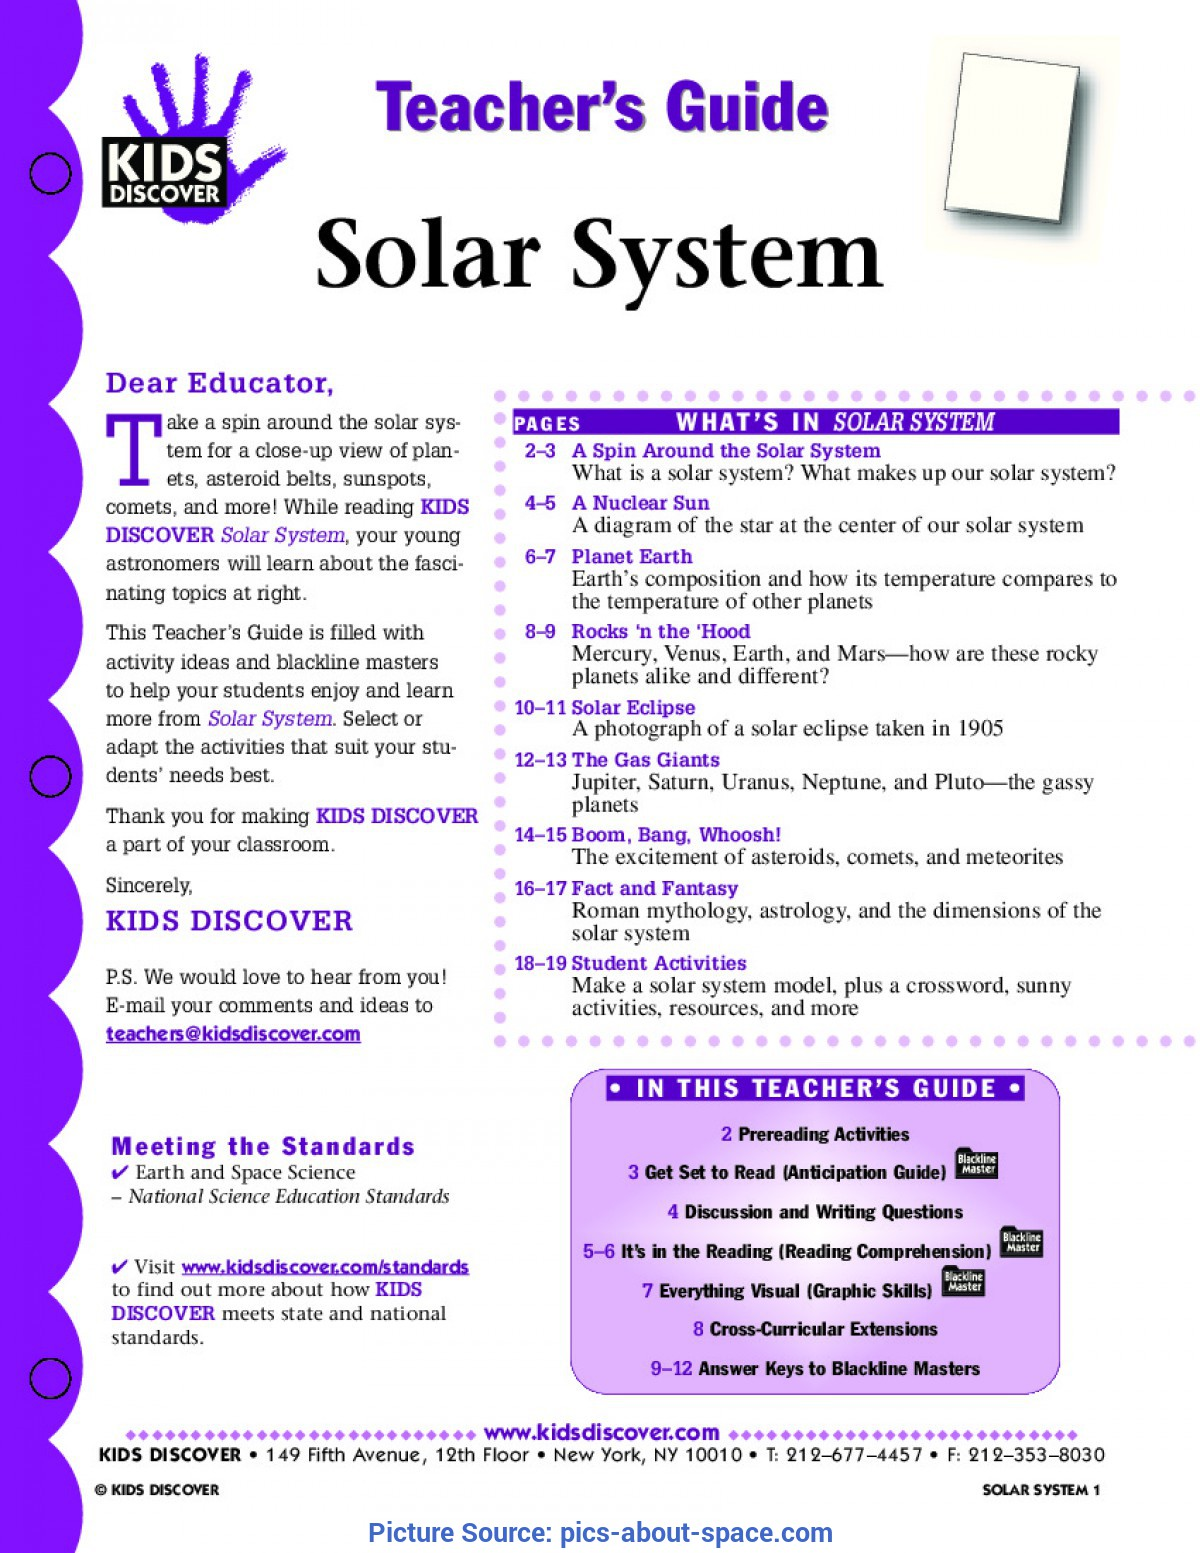 Simple 5e Lesson Plan For Kindergarten Solar System 5e